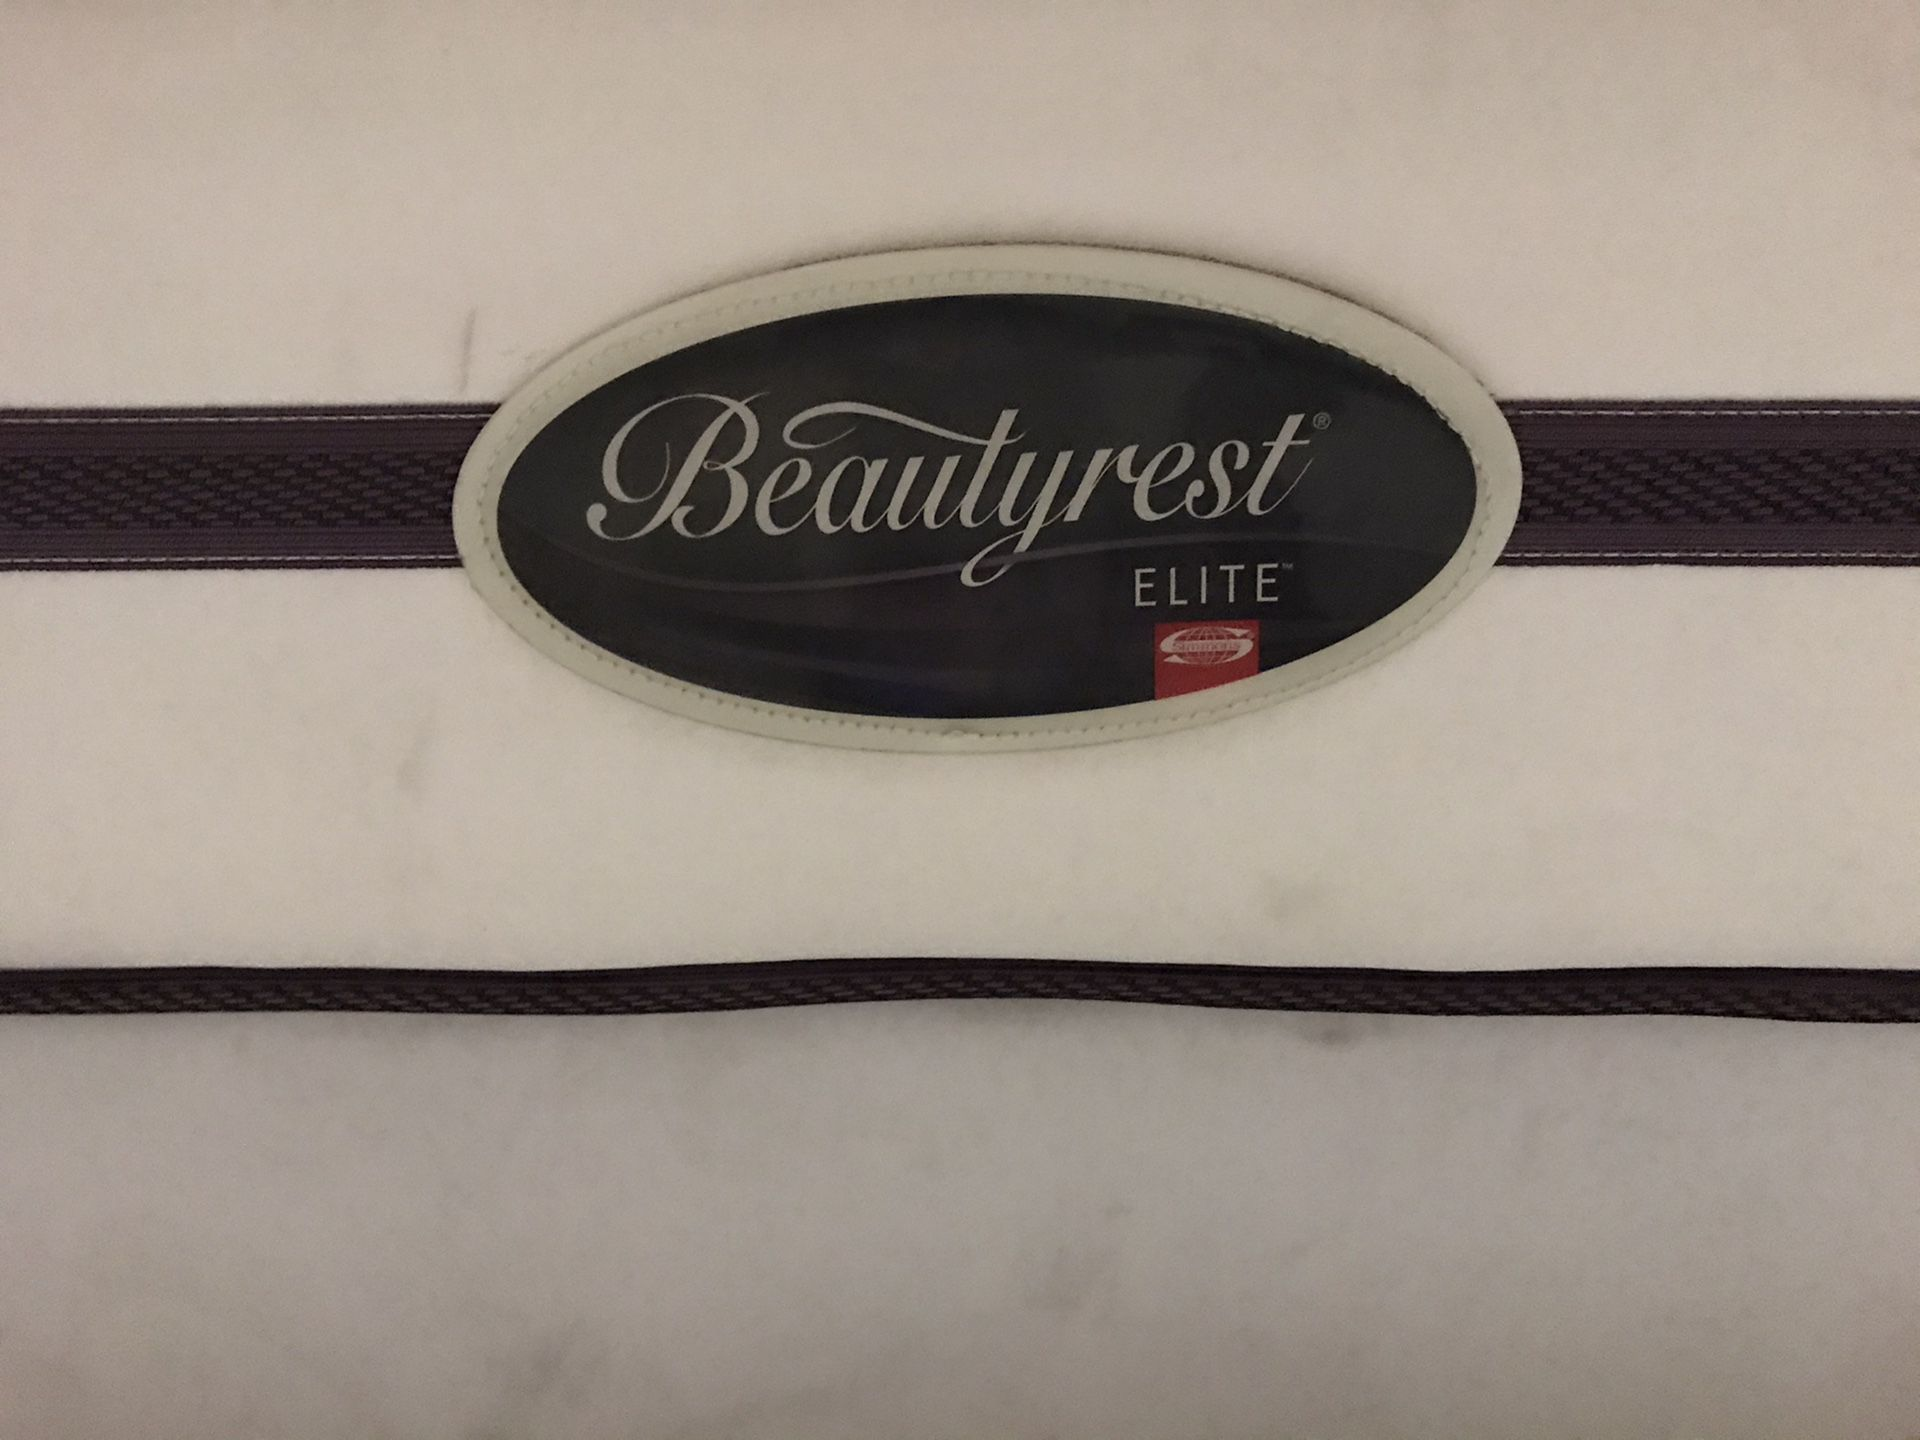 ***King***Simmons Beauty Rest Elite - Free Delivery Available.